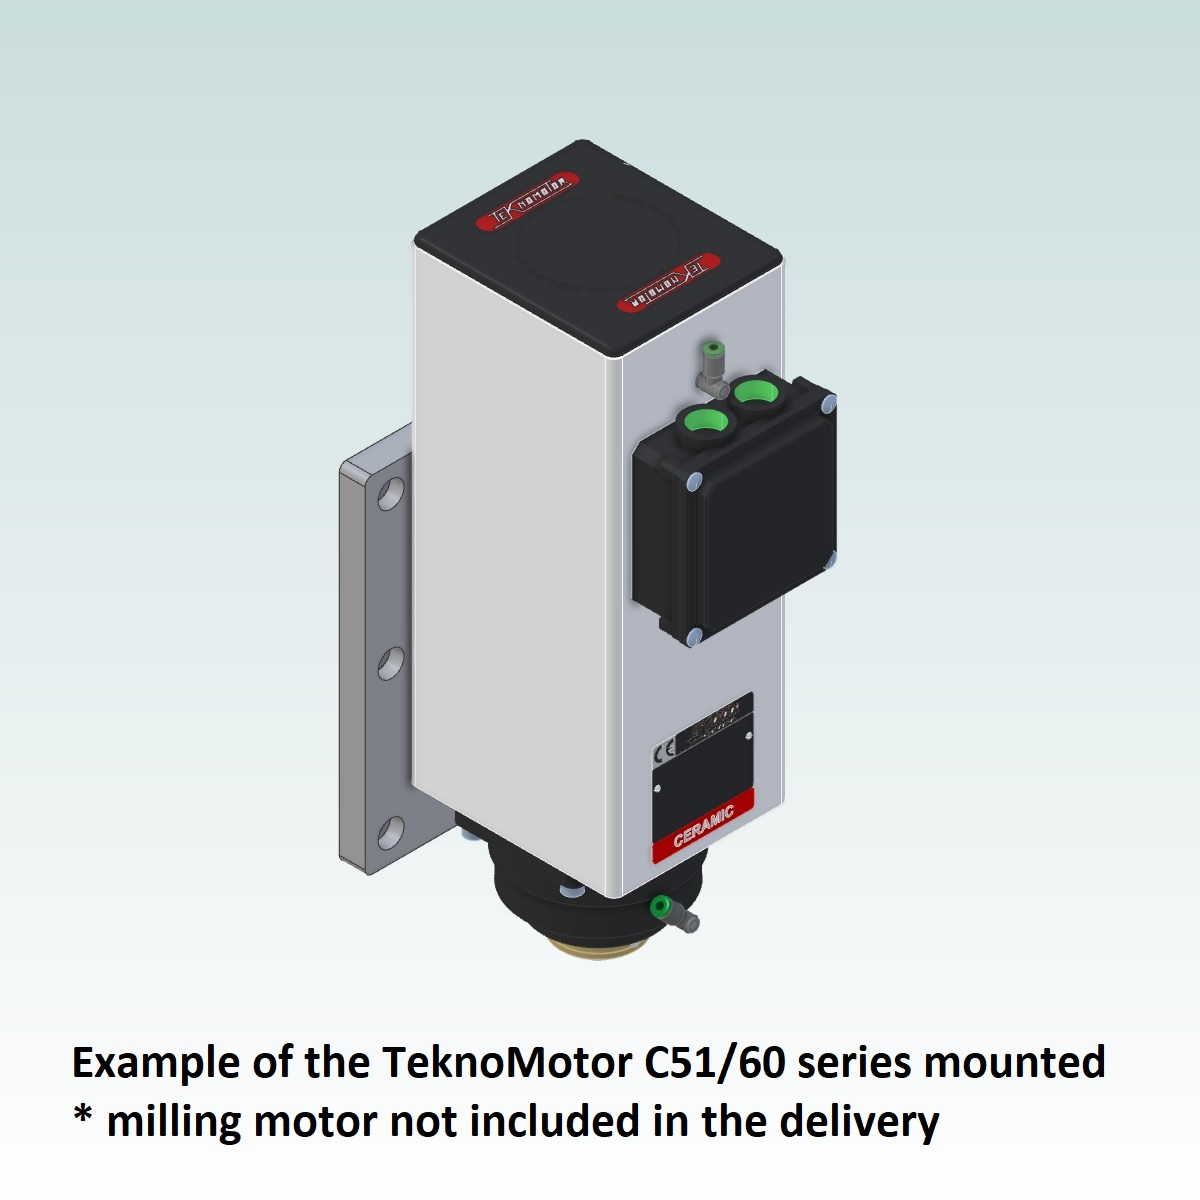 8993 teknomotor mountplate for 40x160 profile with c5160 mounted